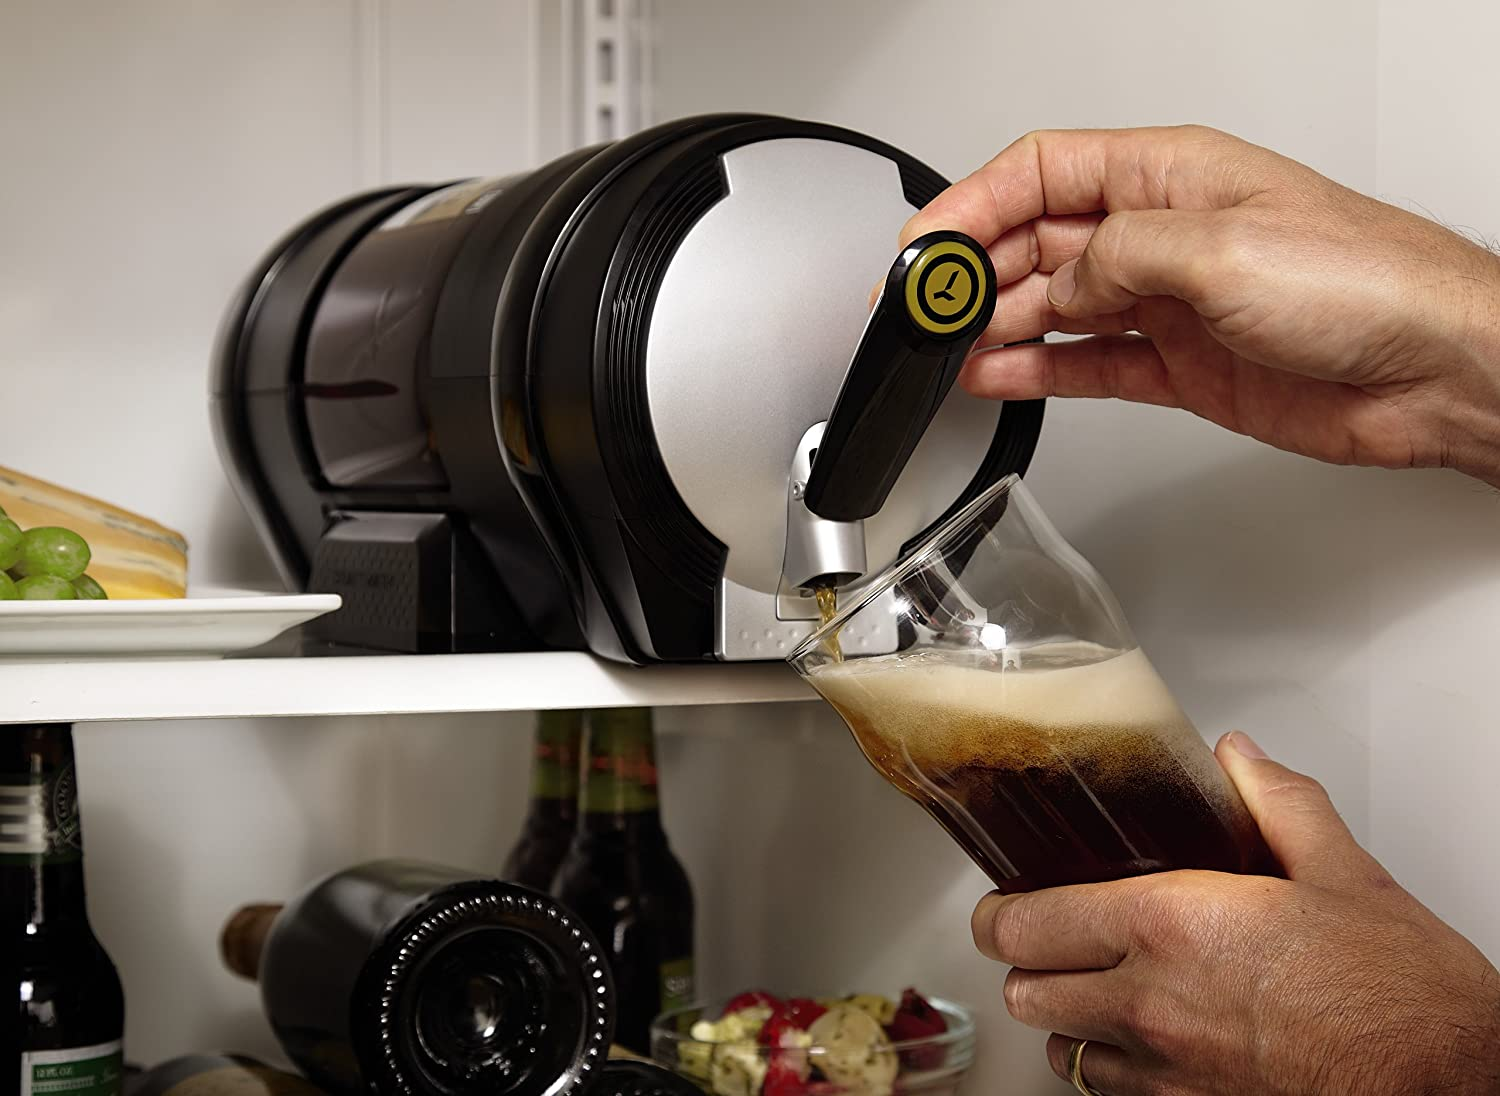 Beer tap systems for home - Amazon Com Draftmark 1 Pack Tap System Nbabpd1500 000 Beer Kegging Equipment Kitchen Dining